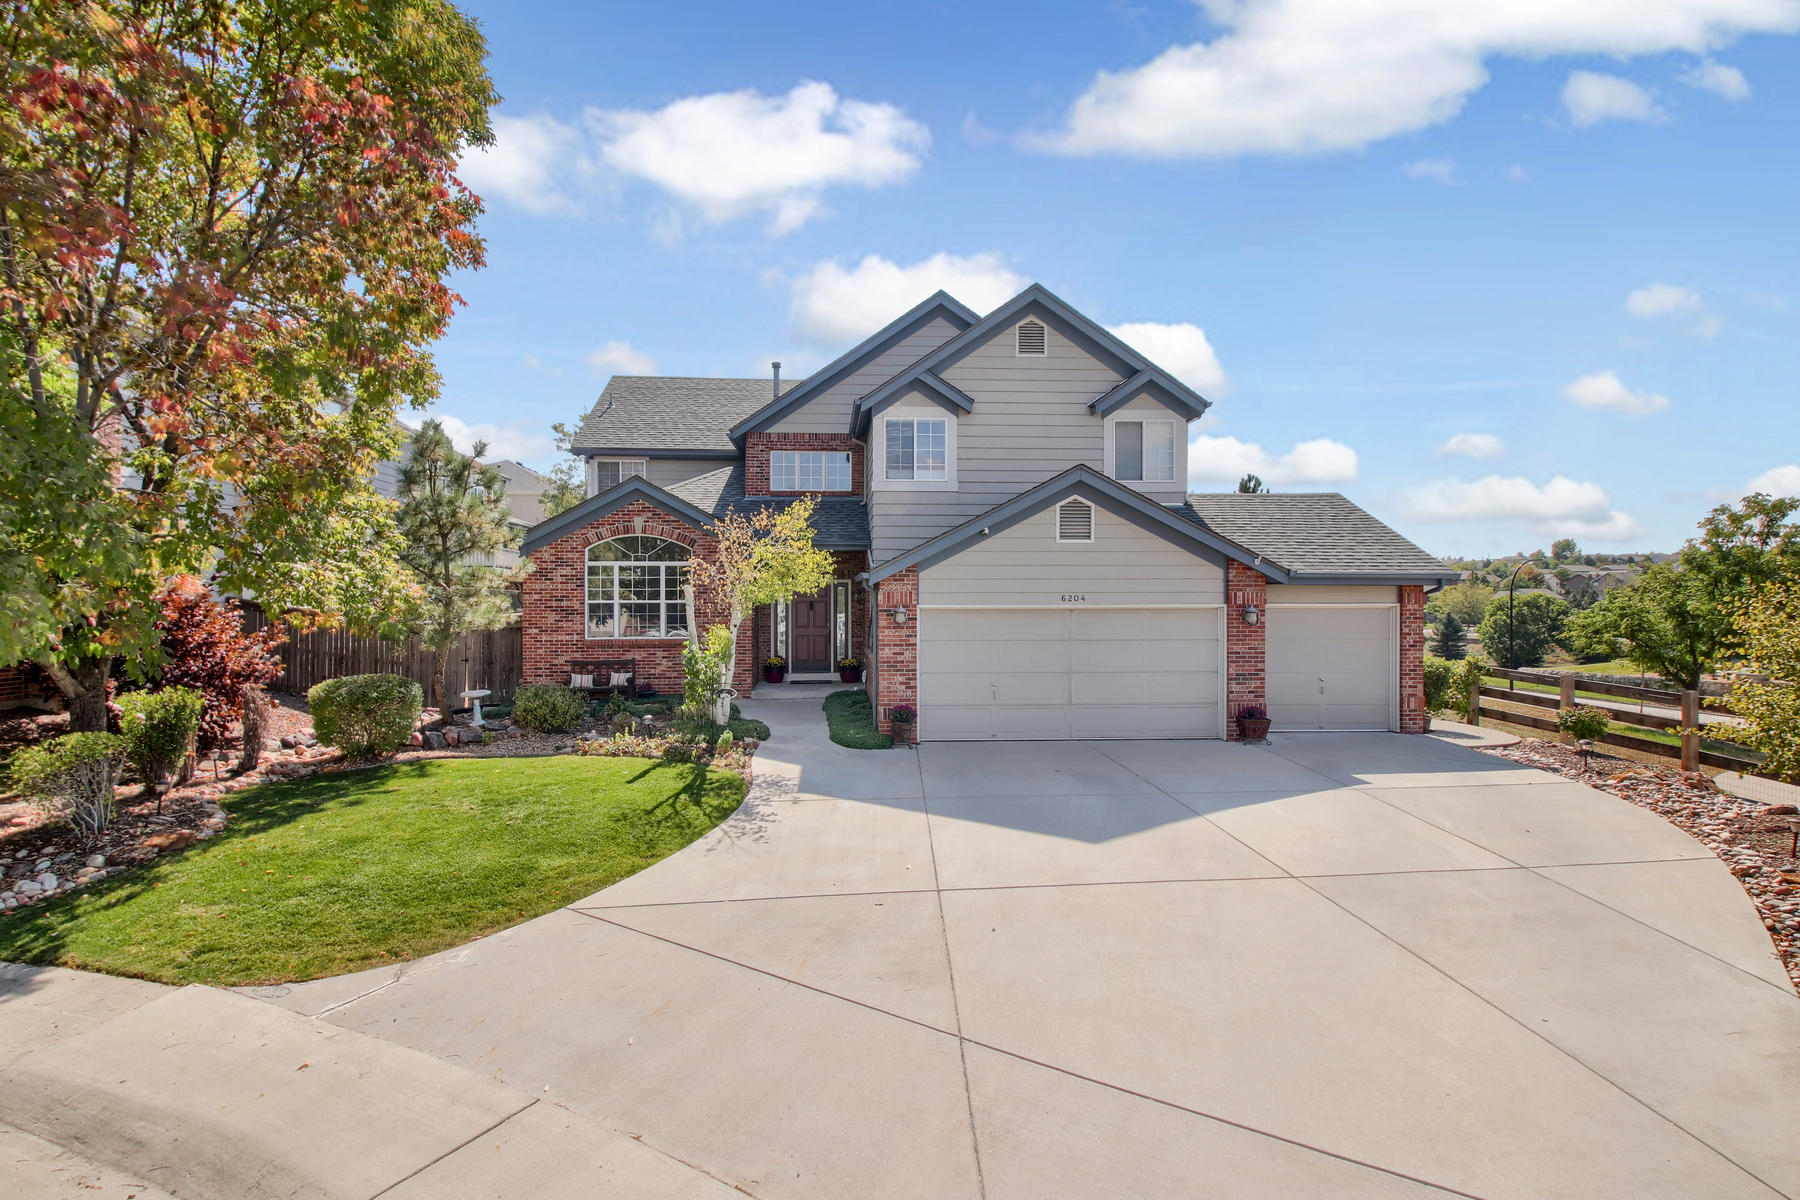 Single Family Home for Active at This lovely home in Littleton has it all! 6204 Lions Pt Littleton, Colorado 80124 United States